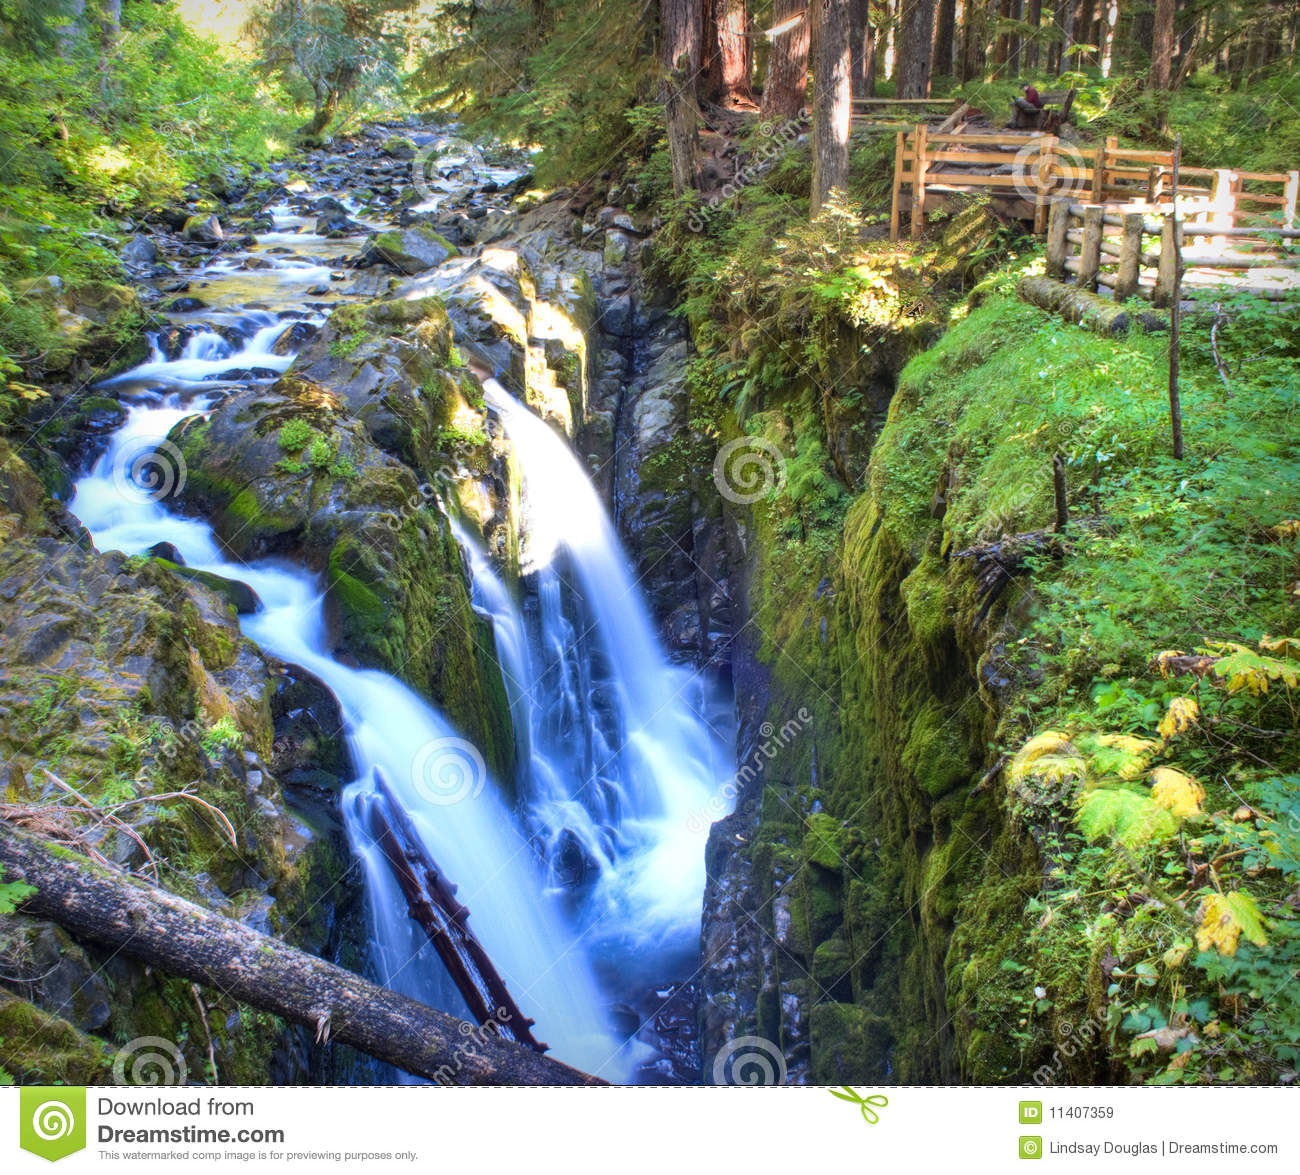 sol duc falls royalty free stock images image 11407359 free clipart olympic rings free olympic clipart borders